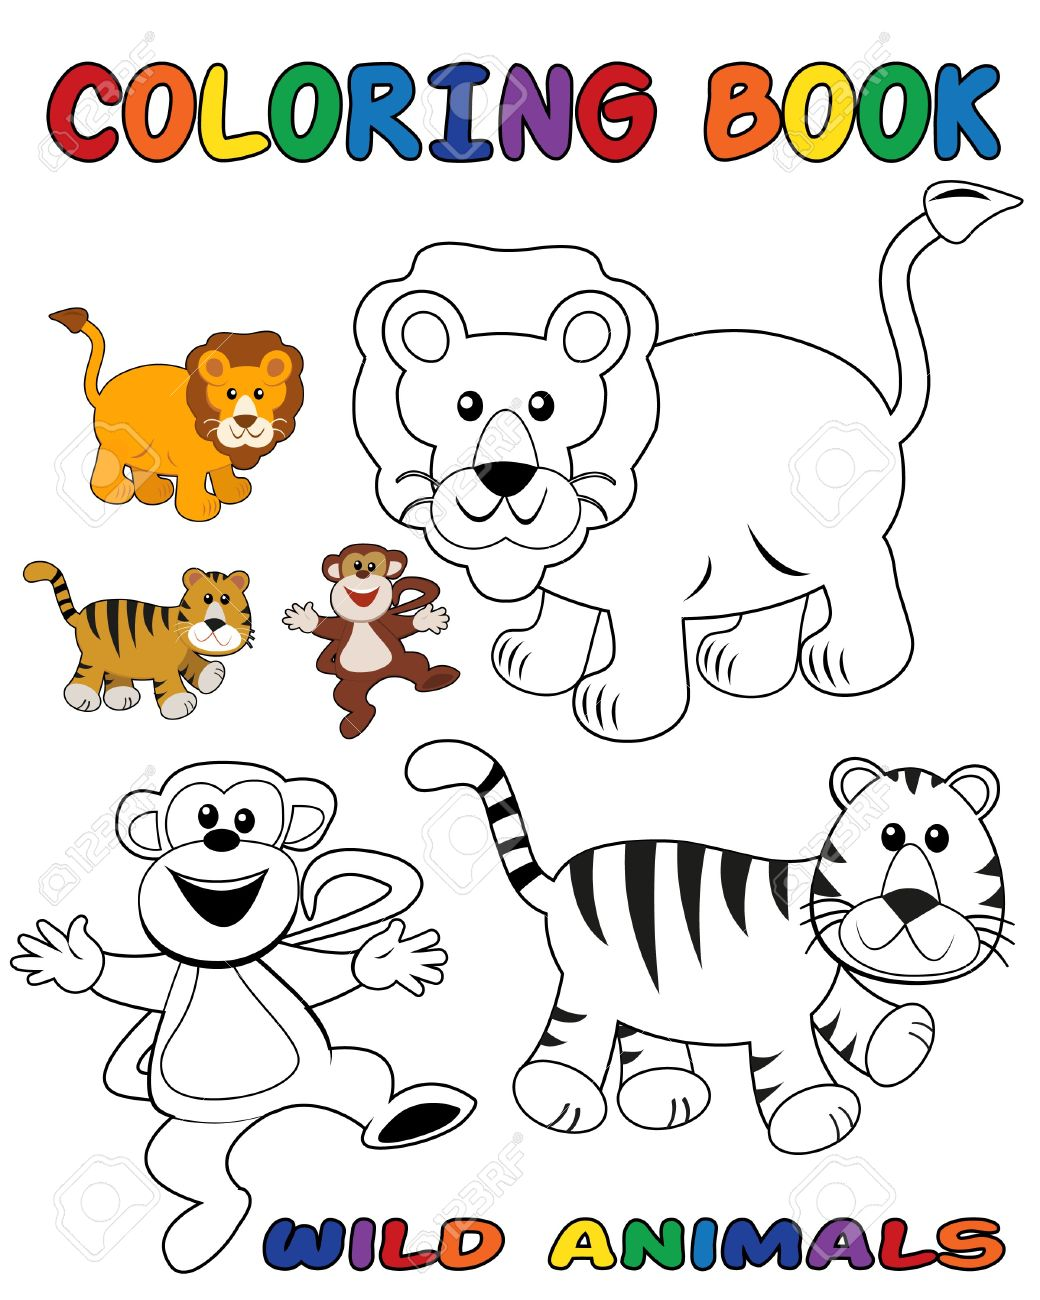 wild animals coloring book outlined and colored objects stock vector 8038122 - Animals Coloring Book